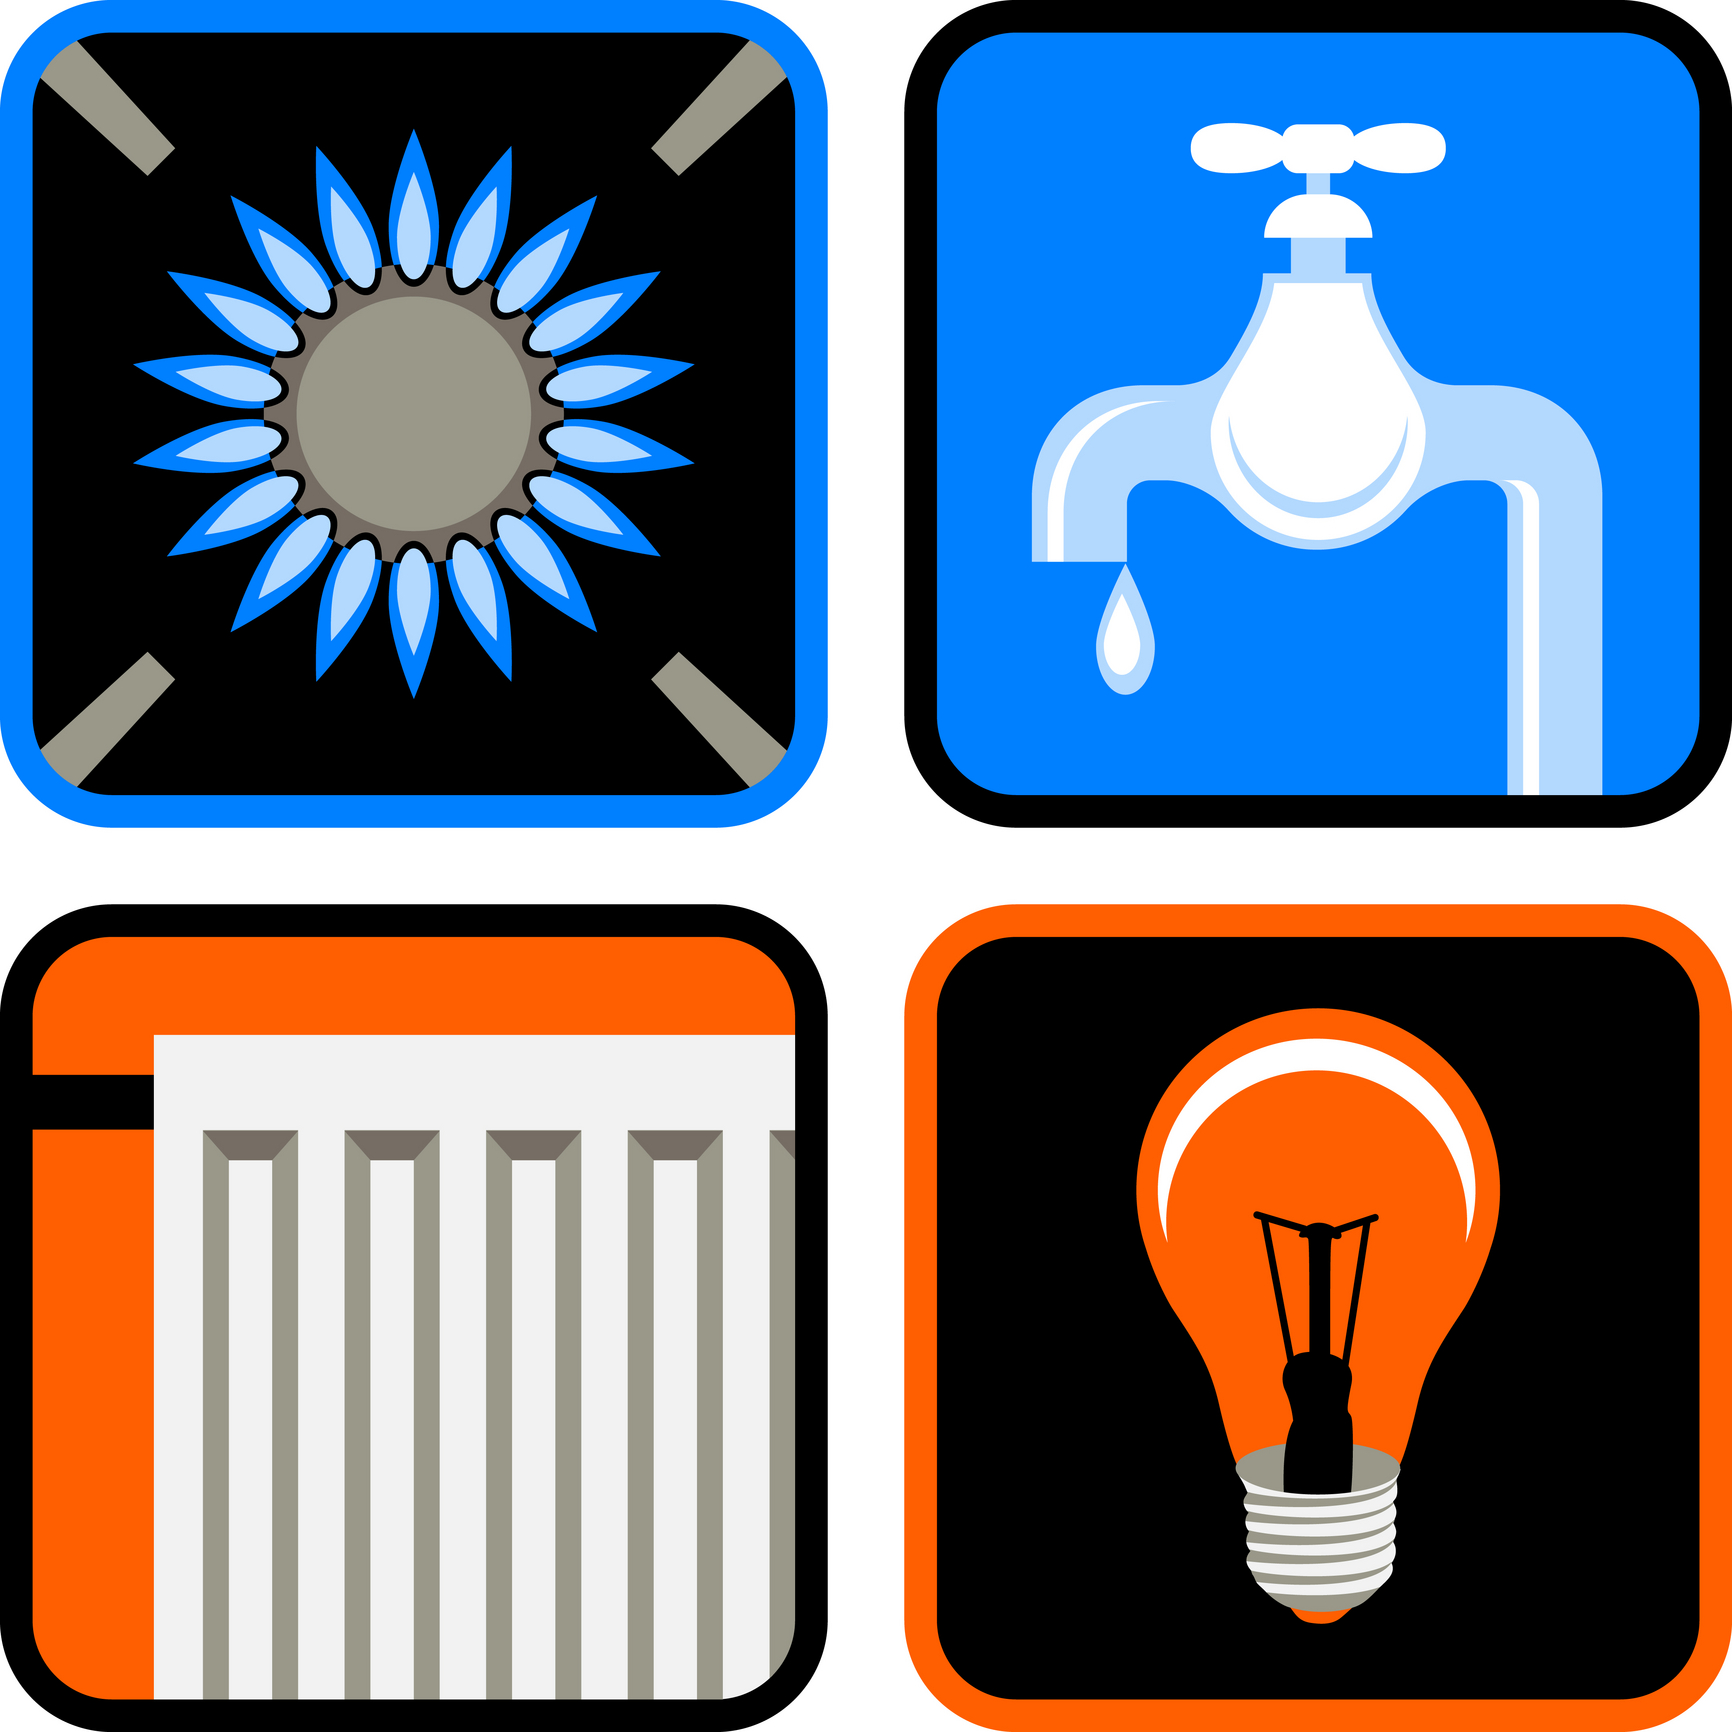 15 House Utilities Icon Images